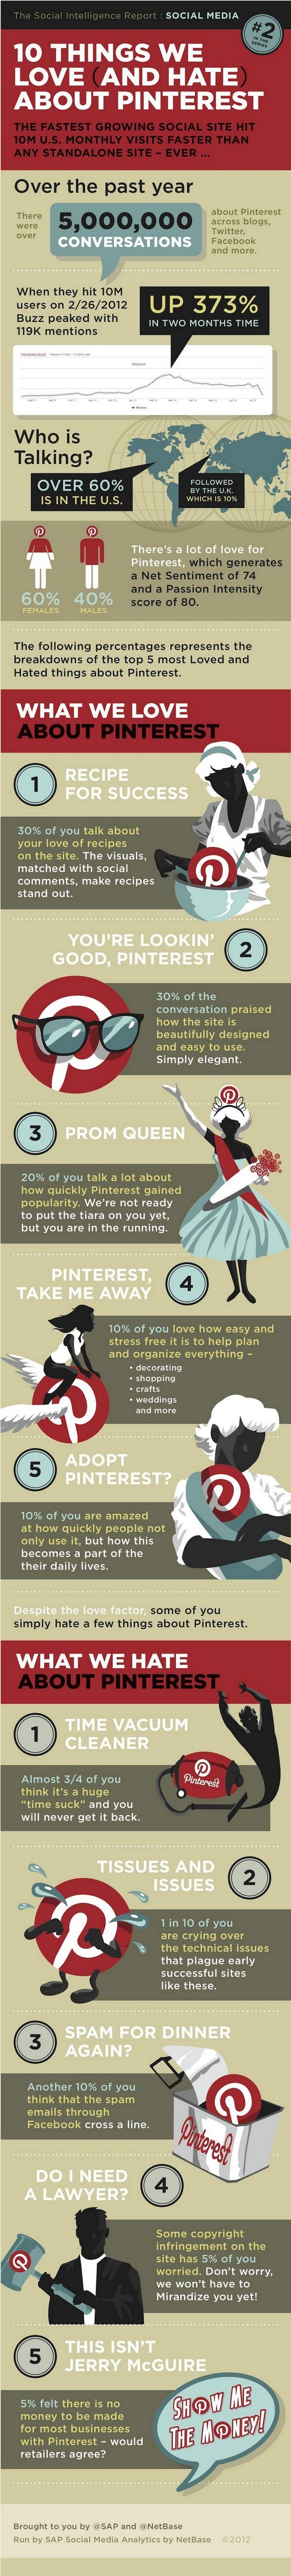 10 things we love and hate about #Pinterest <<< repinned by a #SocialMedia #Blogger from #Munich #Germany http://geistreich78.info | follow me on Twitter: https://twitter.com/Geistreich78 | Google+: https://plus.google.com/102815221668631171374/ | Facebook: https://www.facebook.com/hoffmeister.geistreich78